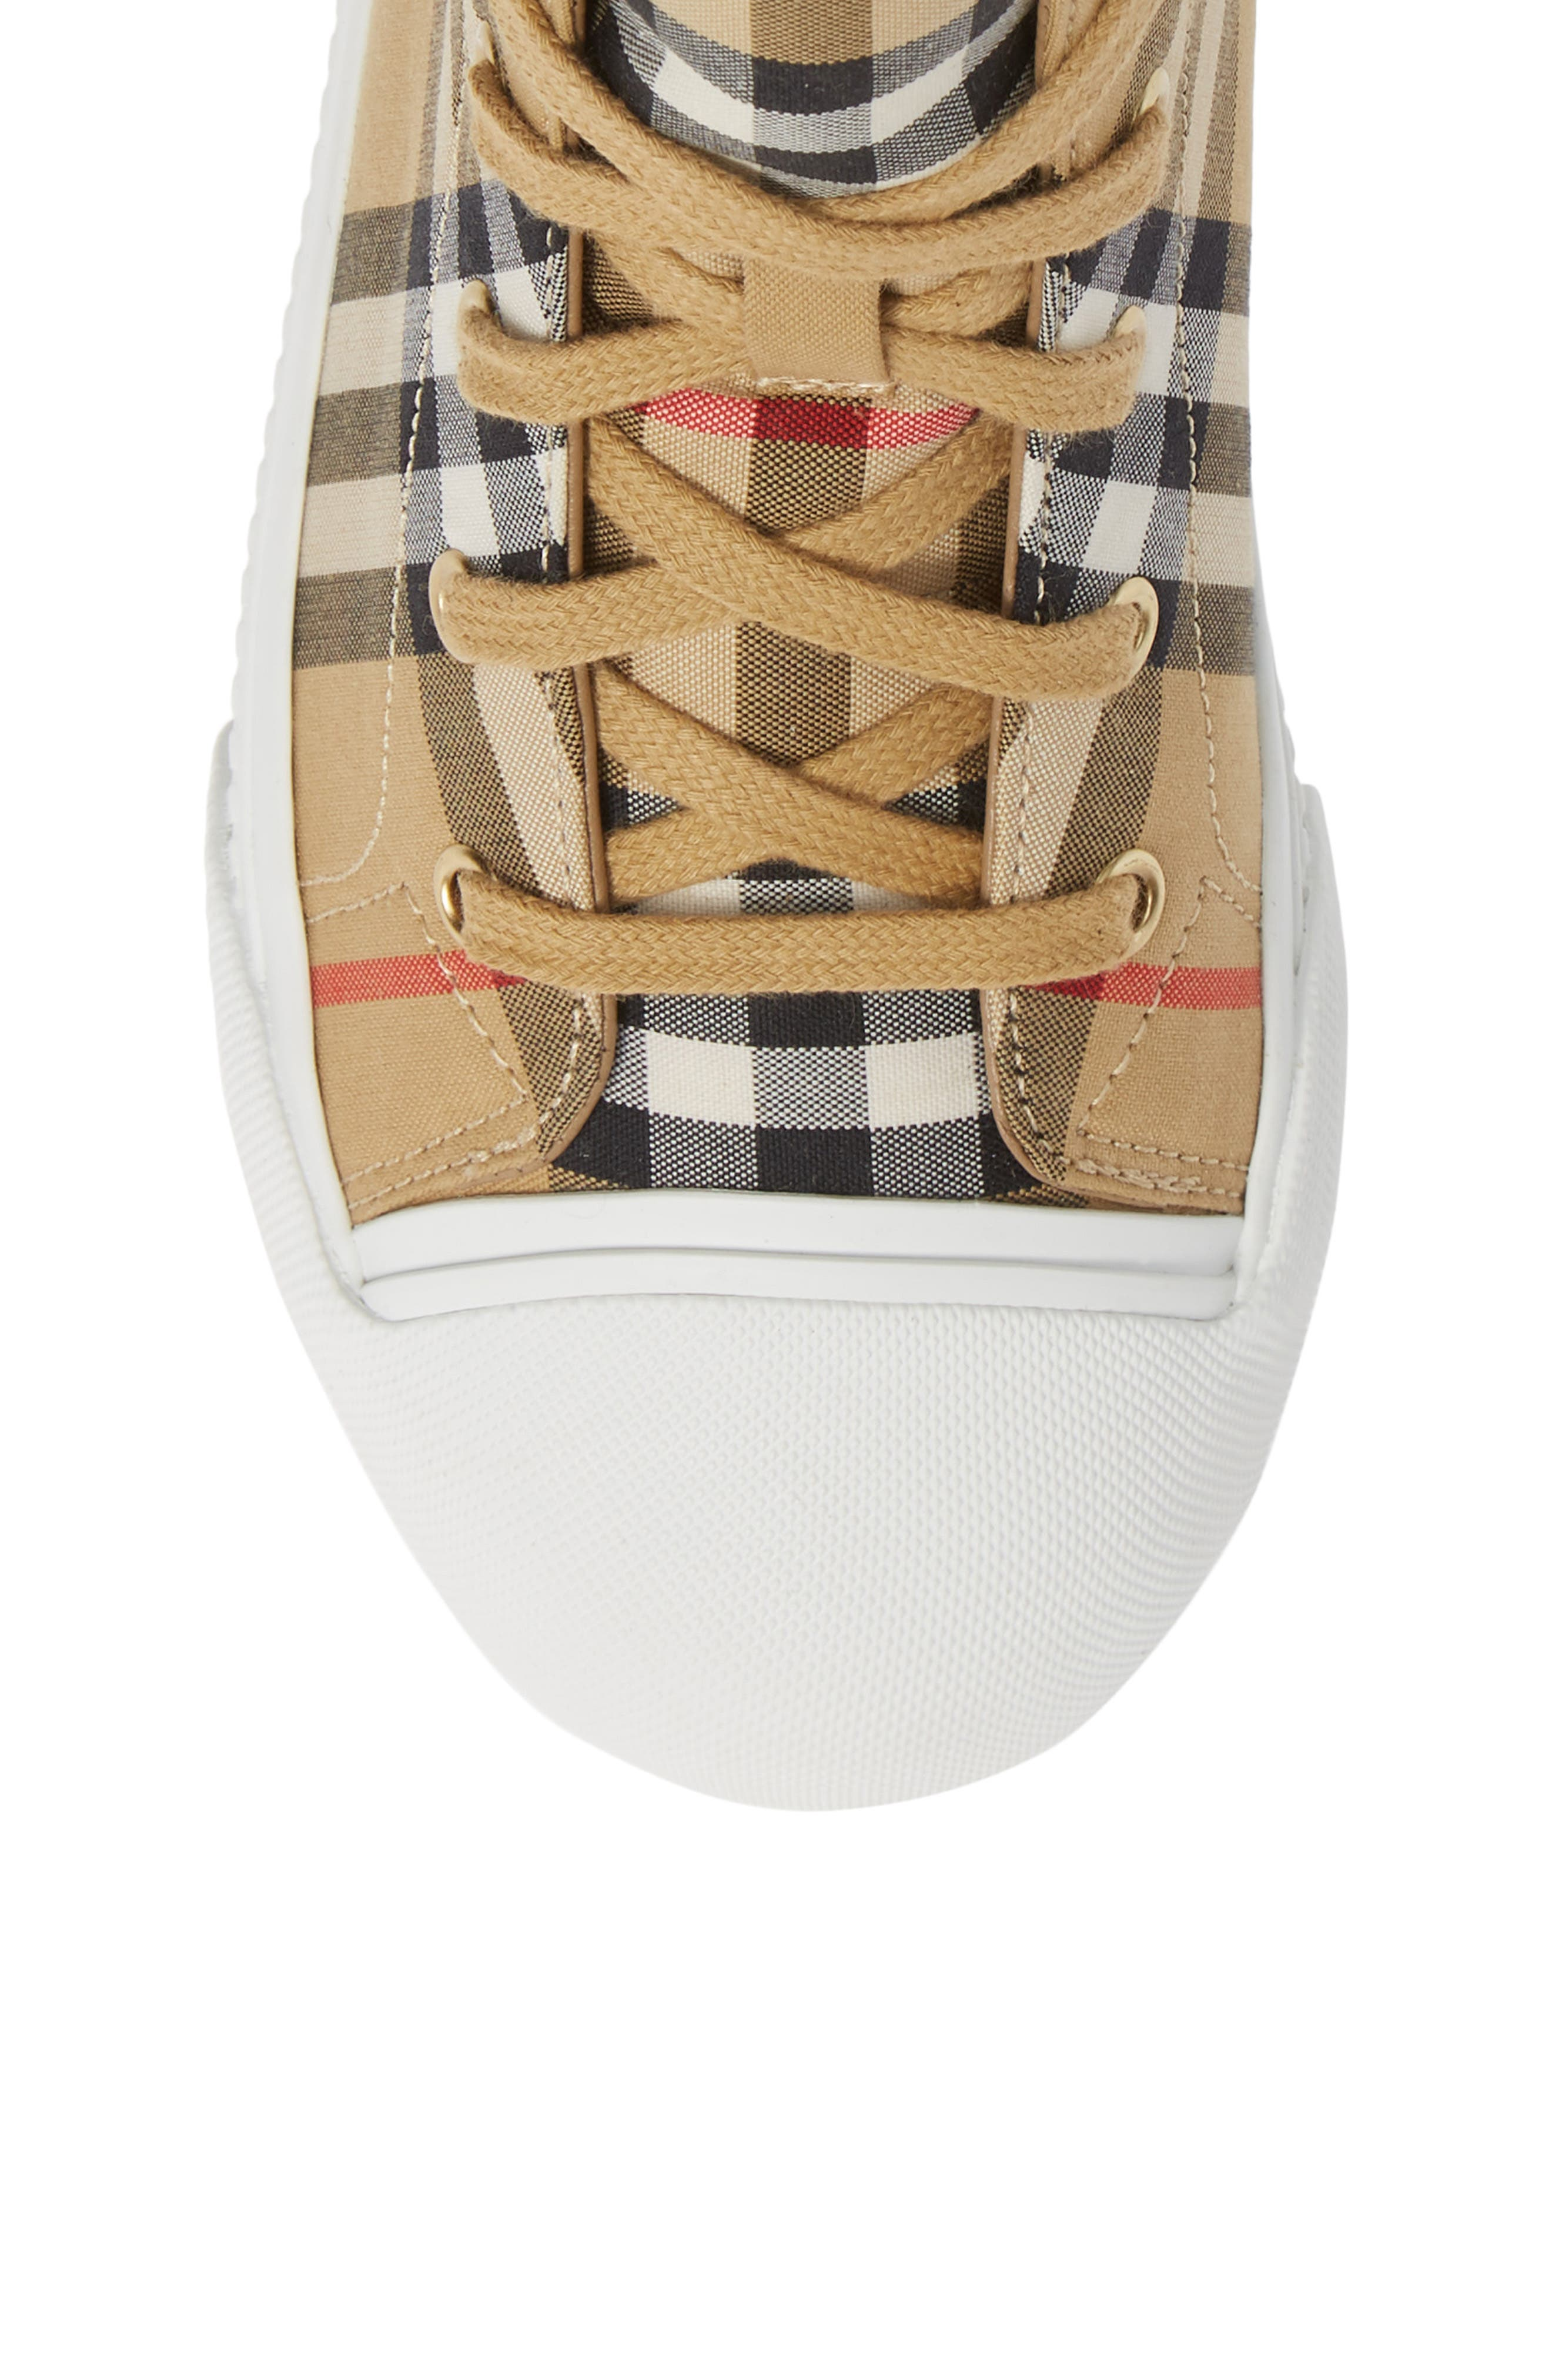 BURBERRY, Belford High-Top Sneaker, Alternate thumbnail 5, color, ANTIQUE YELLOW/ OPTIC WHITE